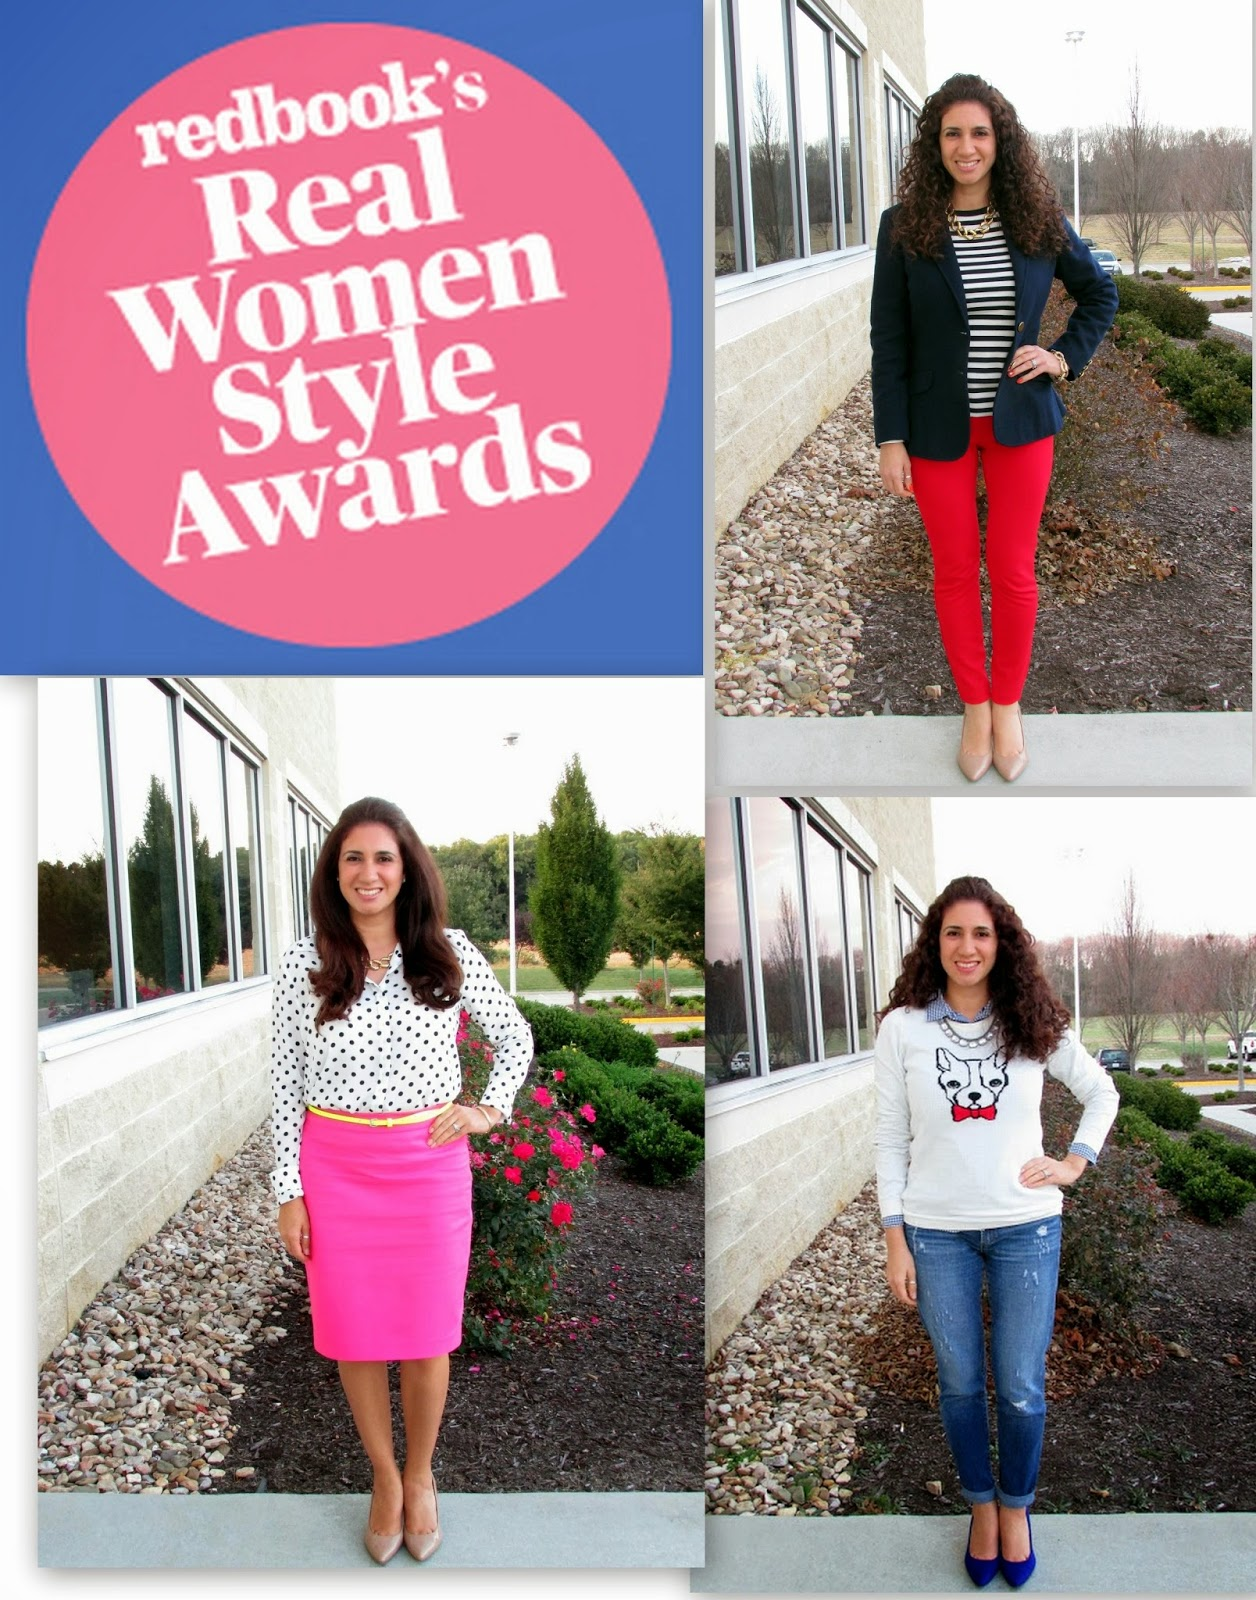 http://www.redbookmag.com/beauty-fashion/real-woman-style-awards